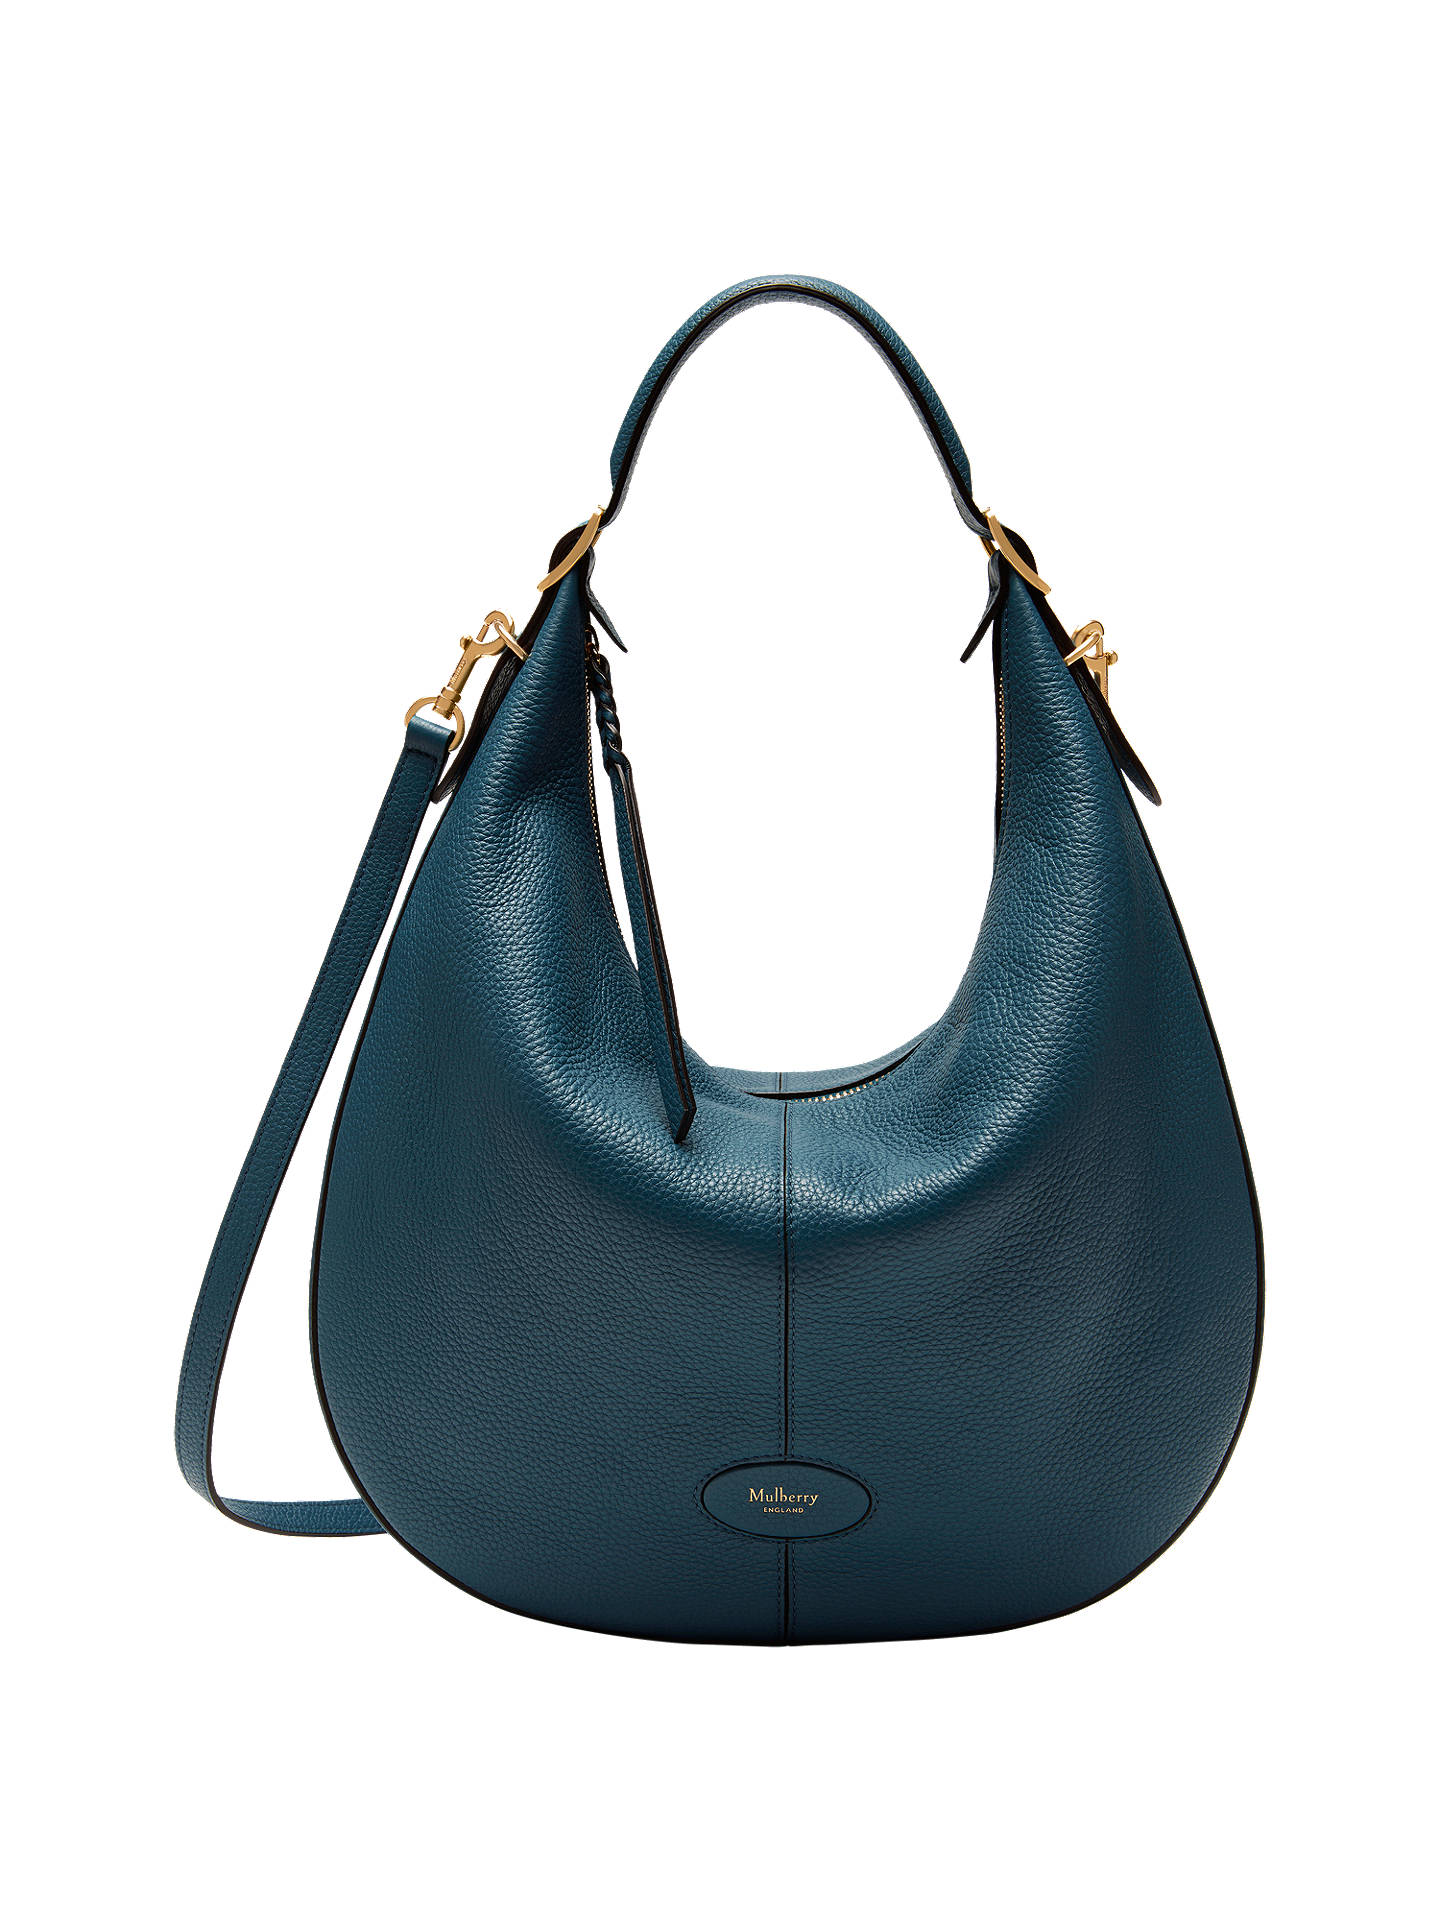 1c8597562b sale buymulberry small selby classic grain leather hobo bag deep sea online  at johnlewis c23be 8f1e9